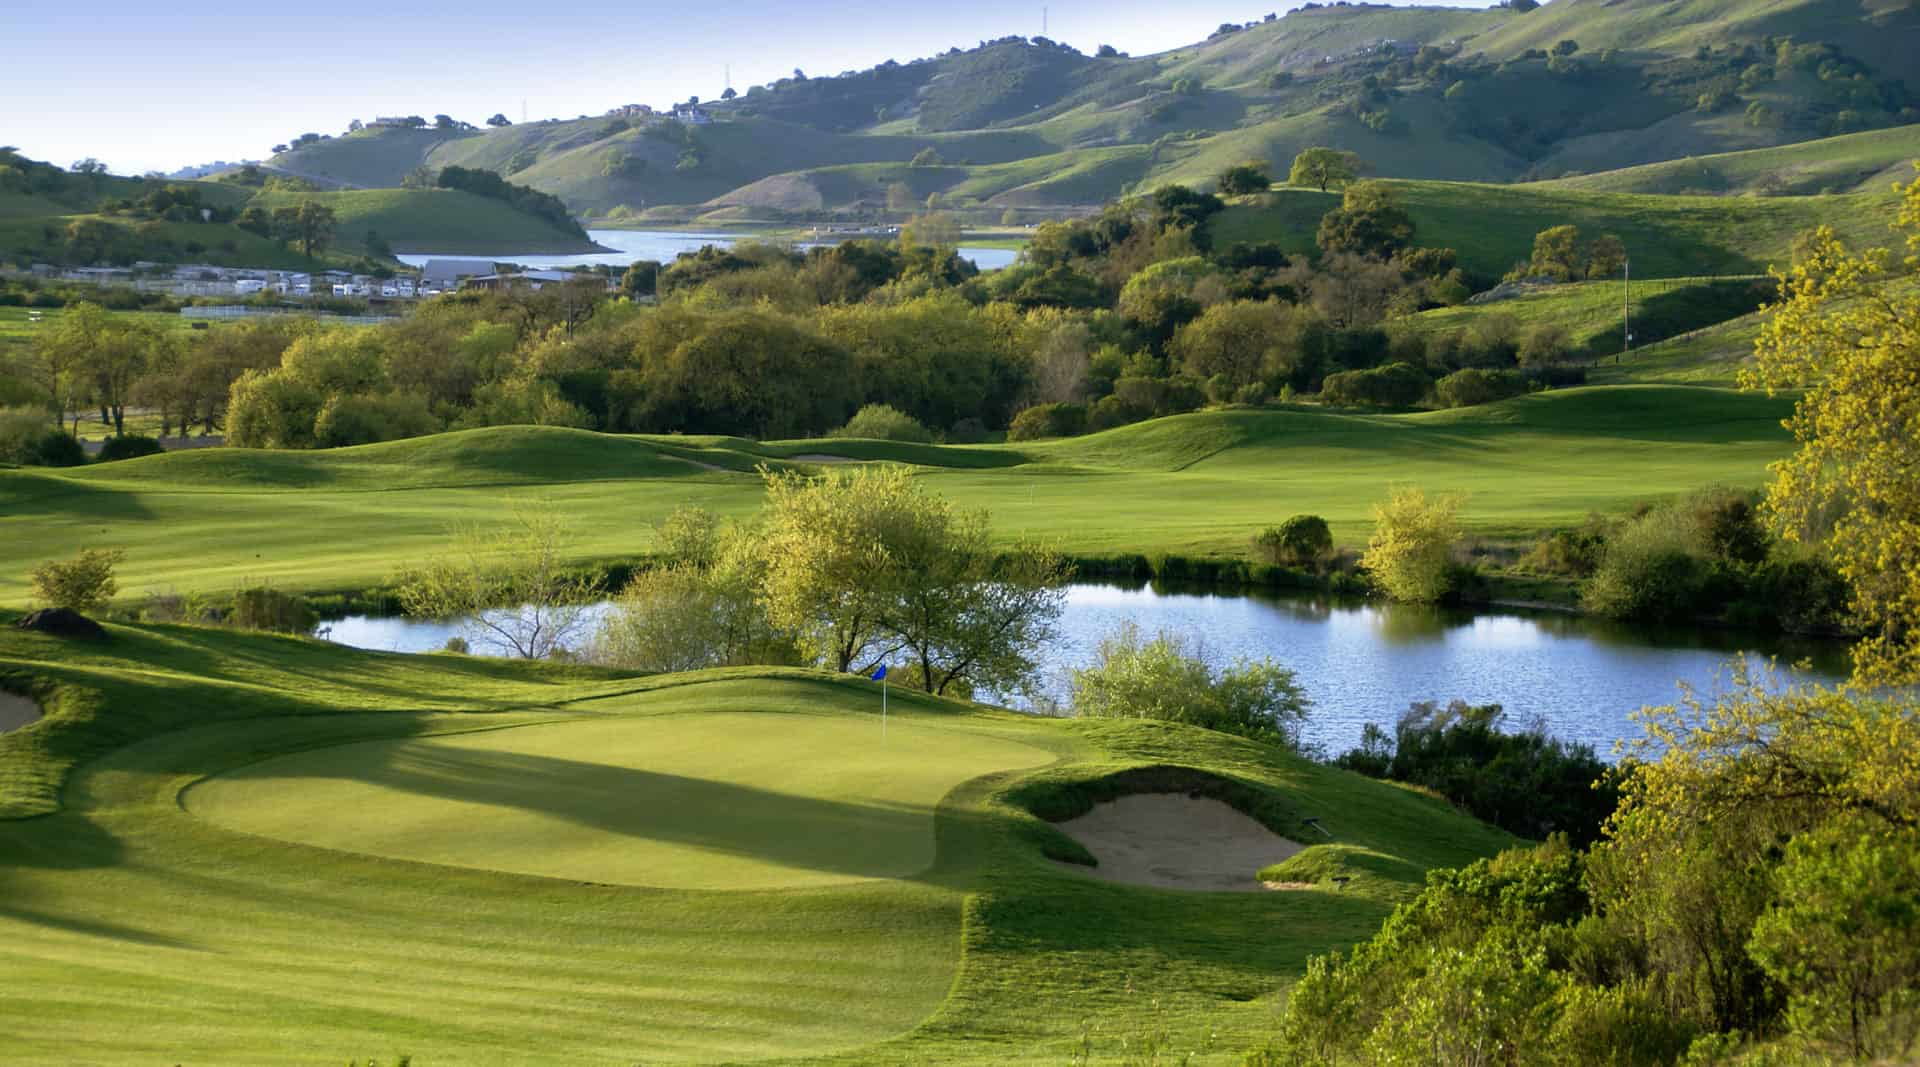 The Best Golf in the Silicon Valley